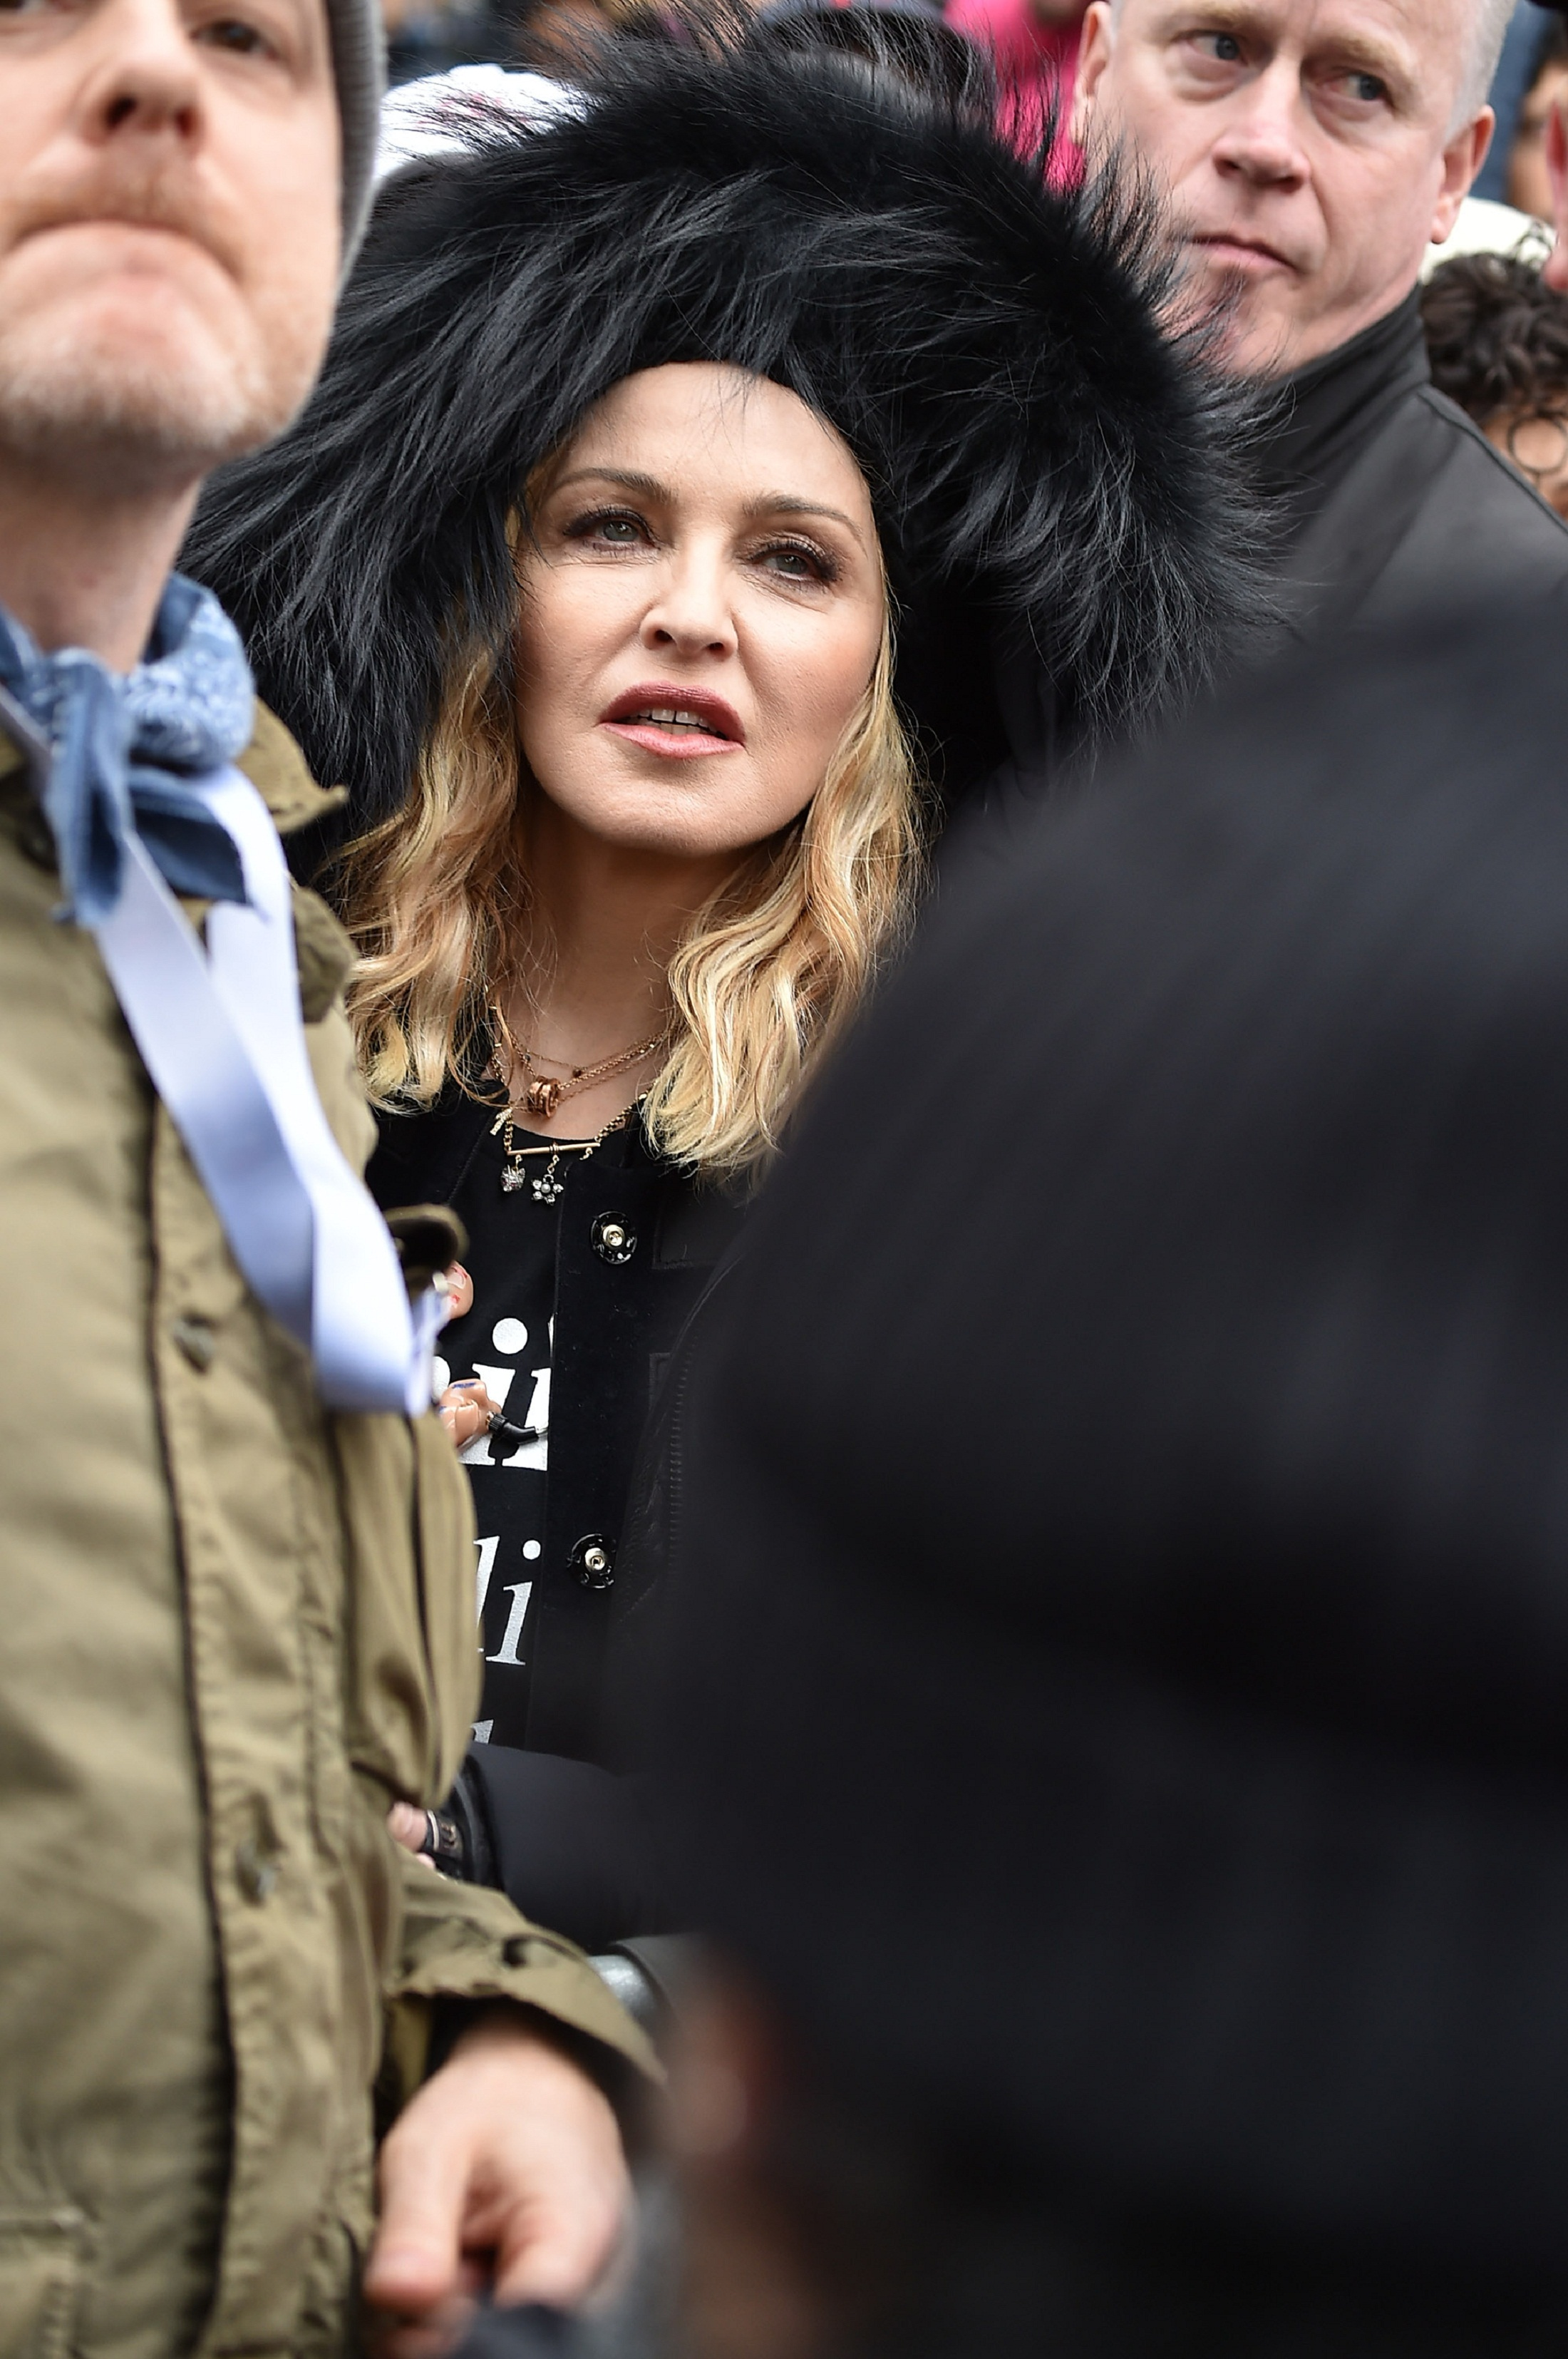 WASHINGTON, DC - JANUARY 21: Madonna attends the Women's March on Washington on January 21, 2017 in Washington, DC.   Theo Wargo/Getty Images/AFP